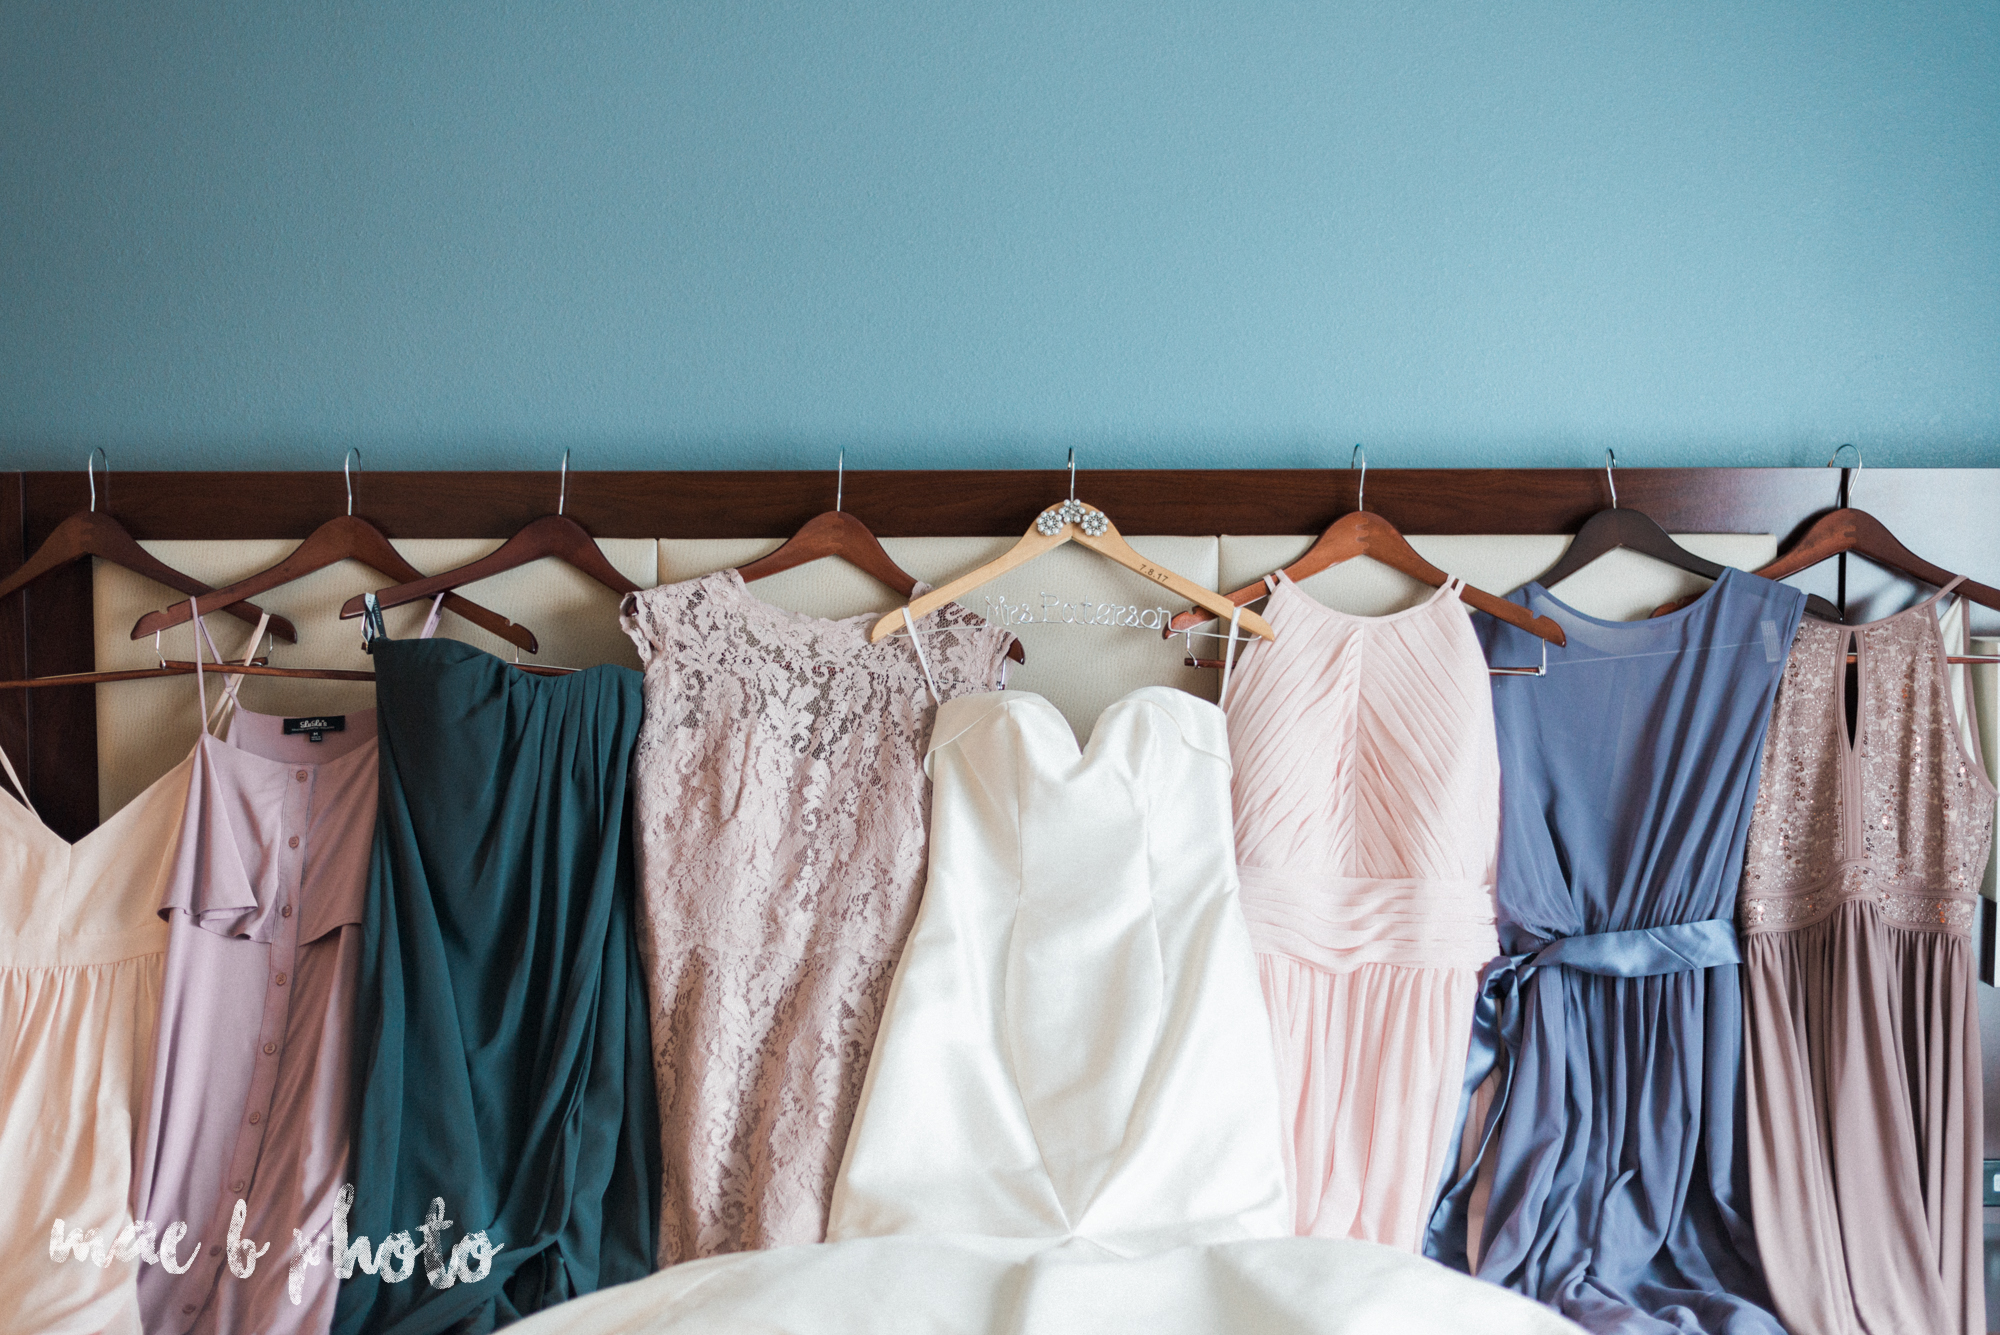 emily and michael's industrial chic summer country club wedding at the lake club in poland ohio photographed by cleveland wedding photographer mae b photo-21.jpg